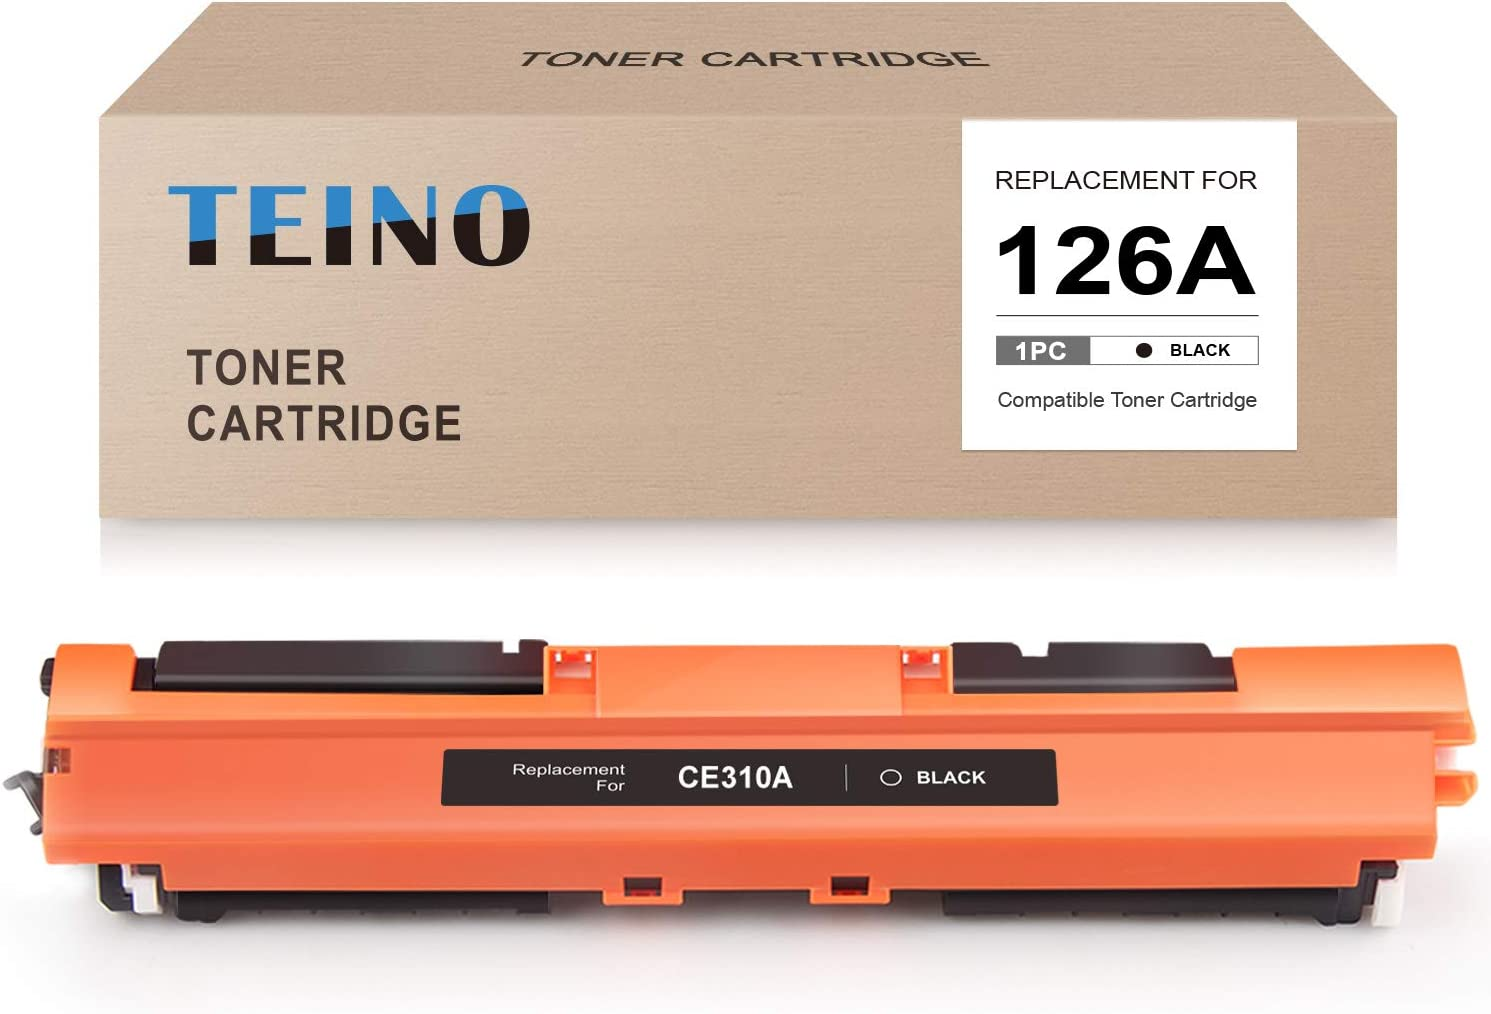 TEINO Compatible Toner Cartridge Replacement for HP 126A CE310A use with HP Laserjet Pro 100 Color MFP M175nw CP1025nw Laserjet Pro 200 M275NW TopShot Laserjet Pro M275 MFP (Black, 1-Pack)